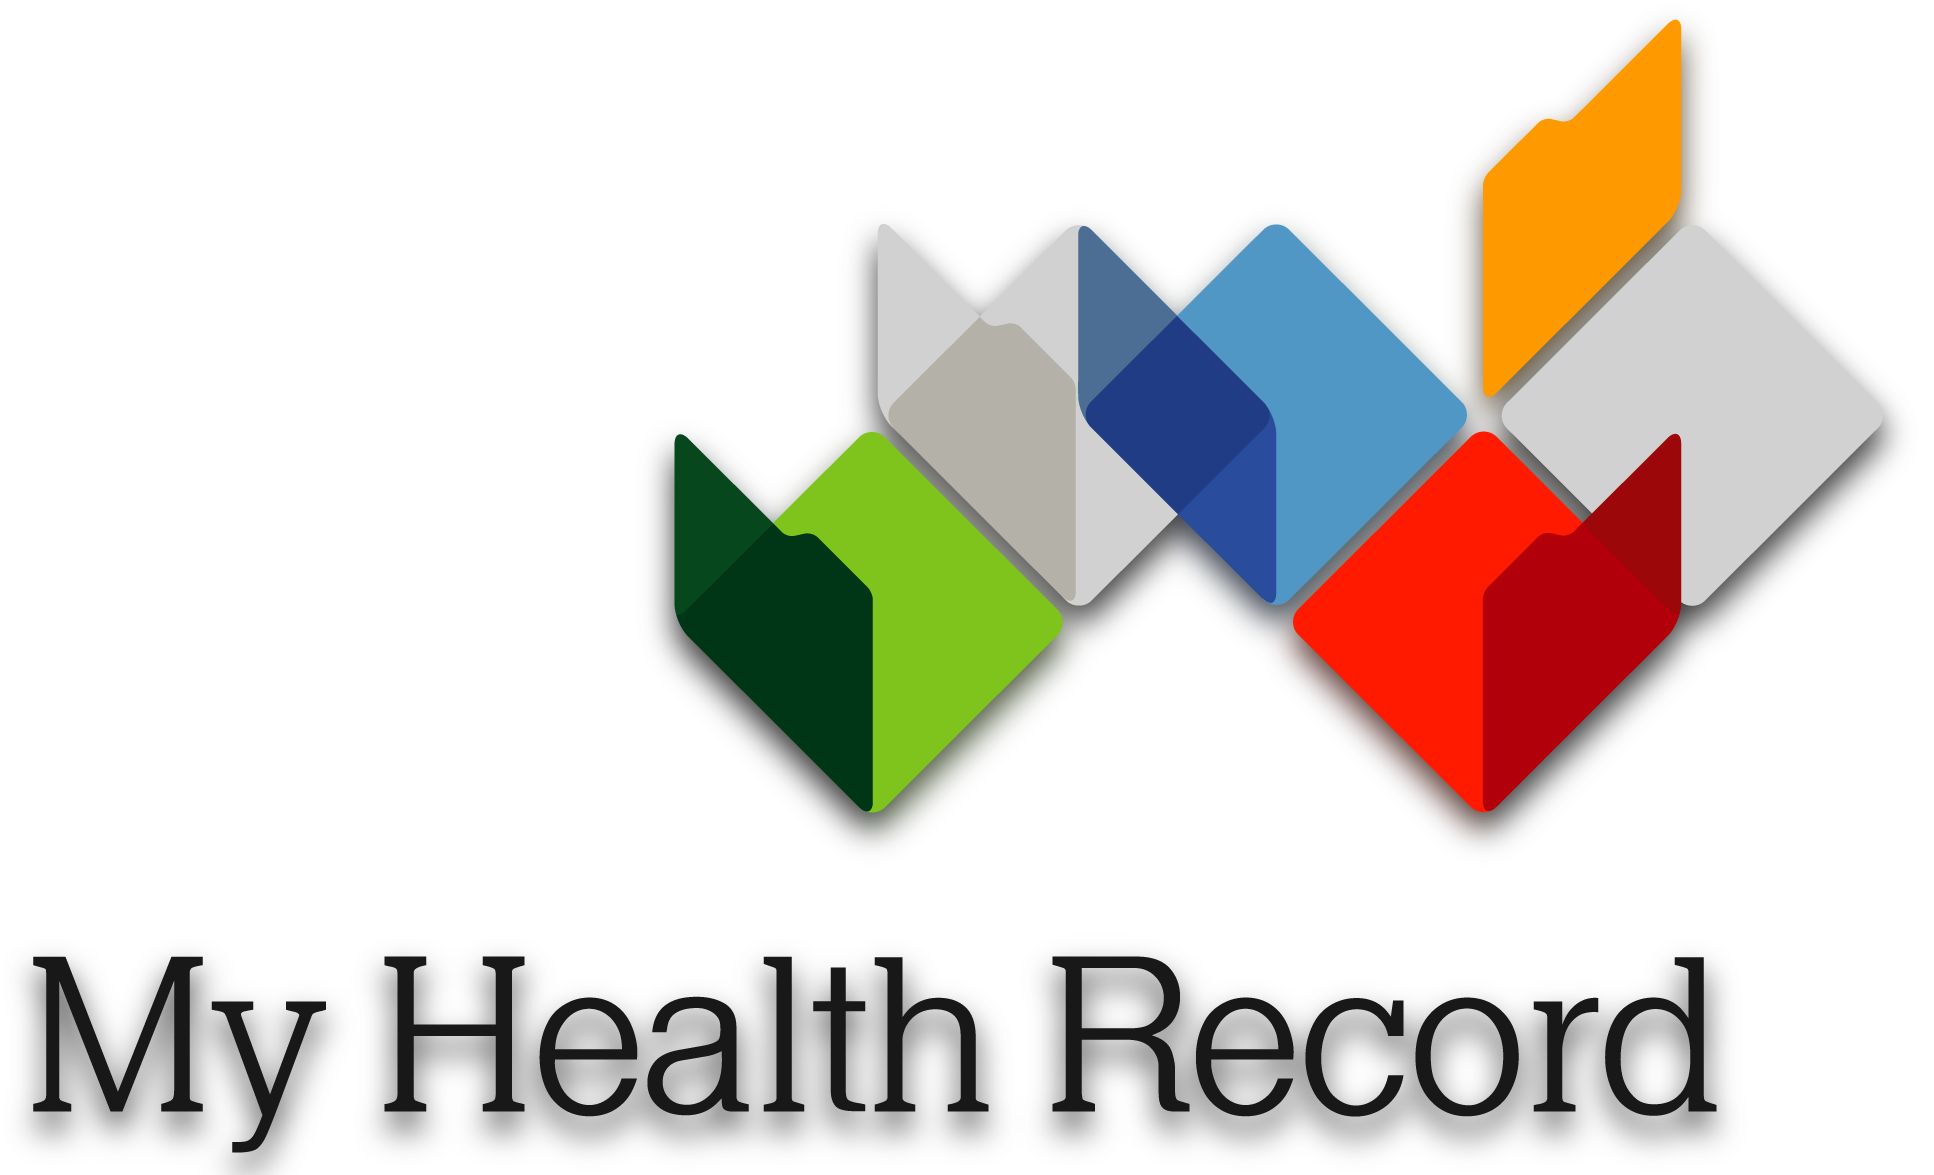 My Health Record logo - shadowed-1.png